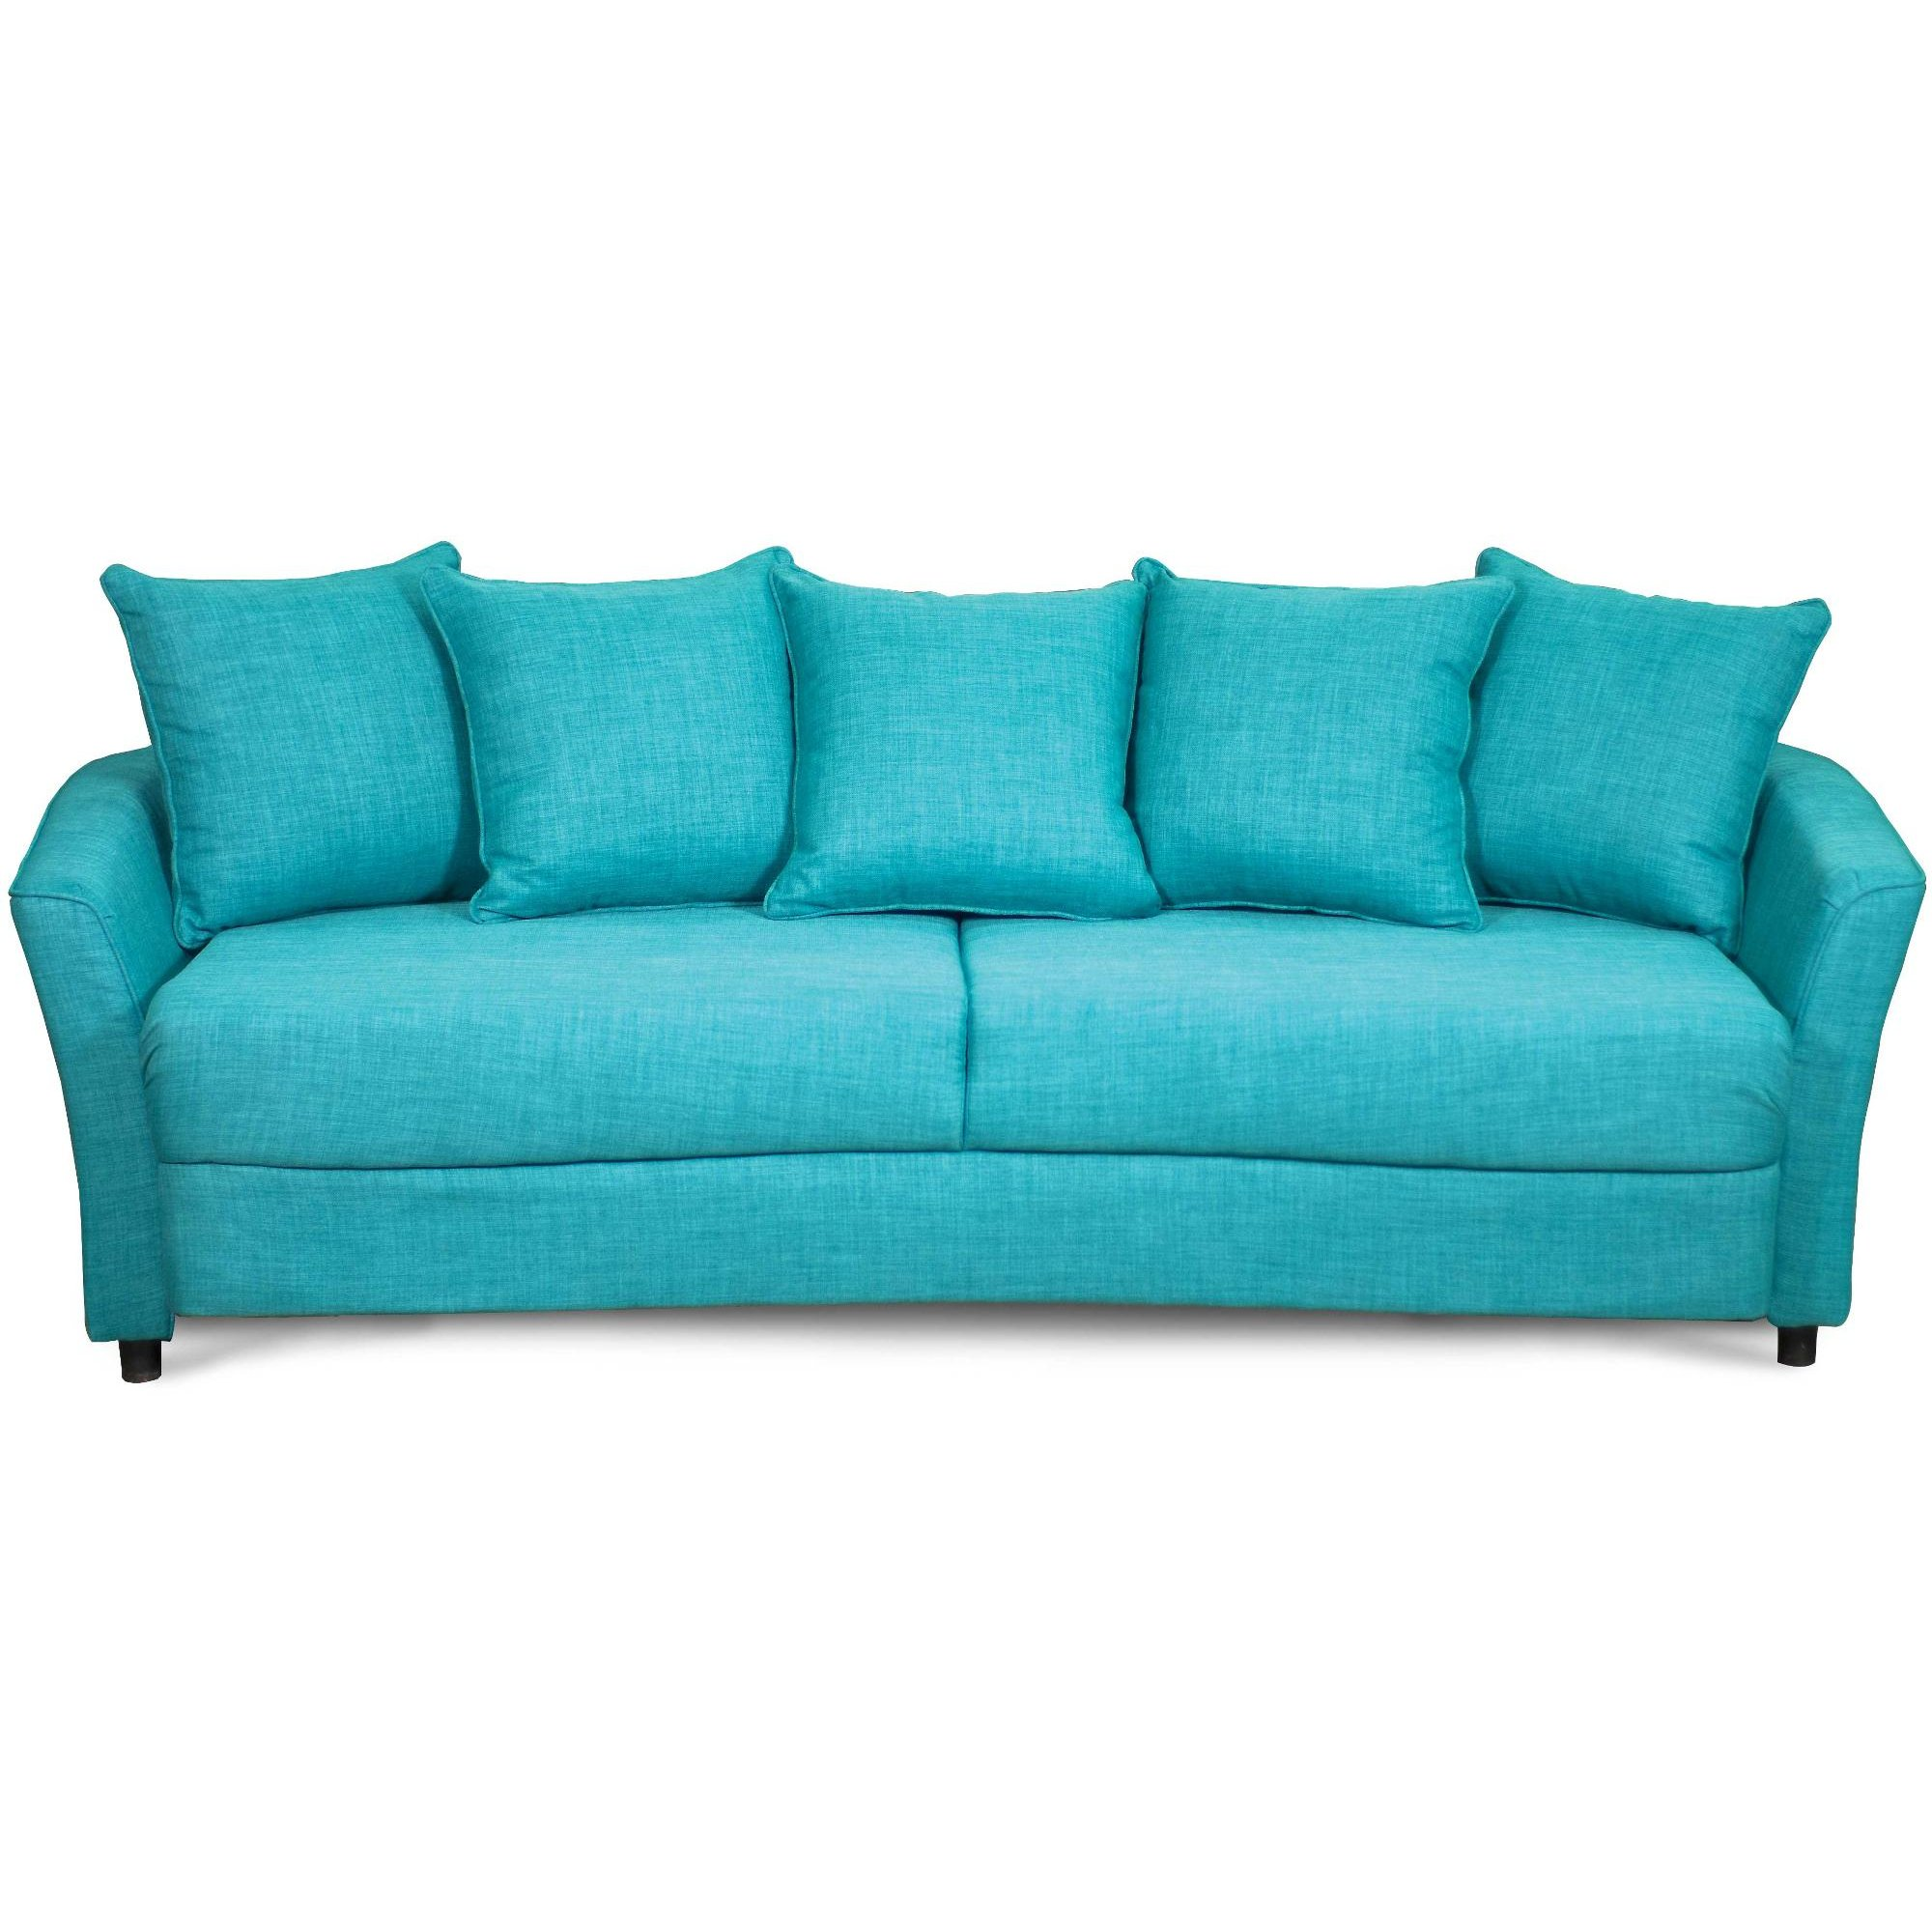 ... Casual Contemporary Turquoise Sofa Bed - Marana